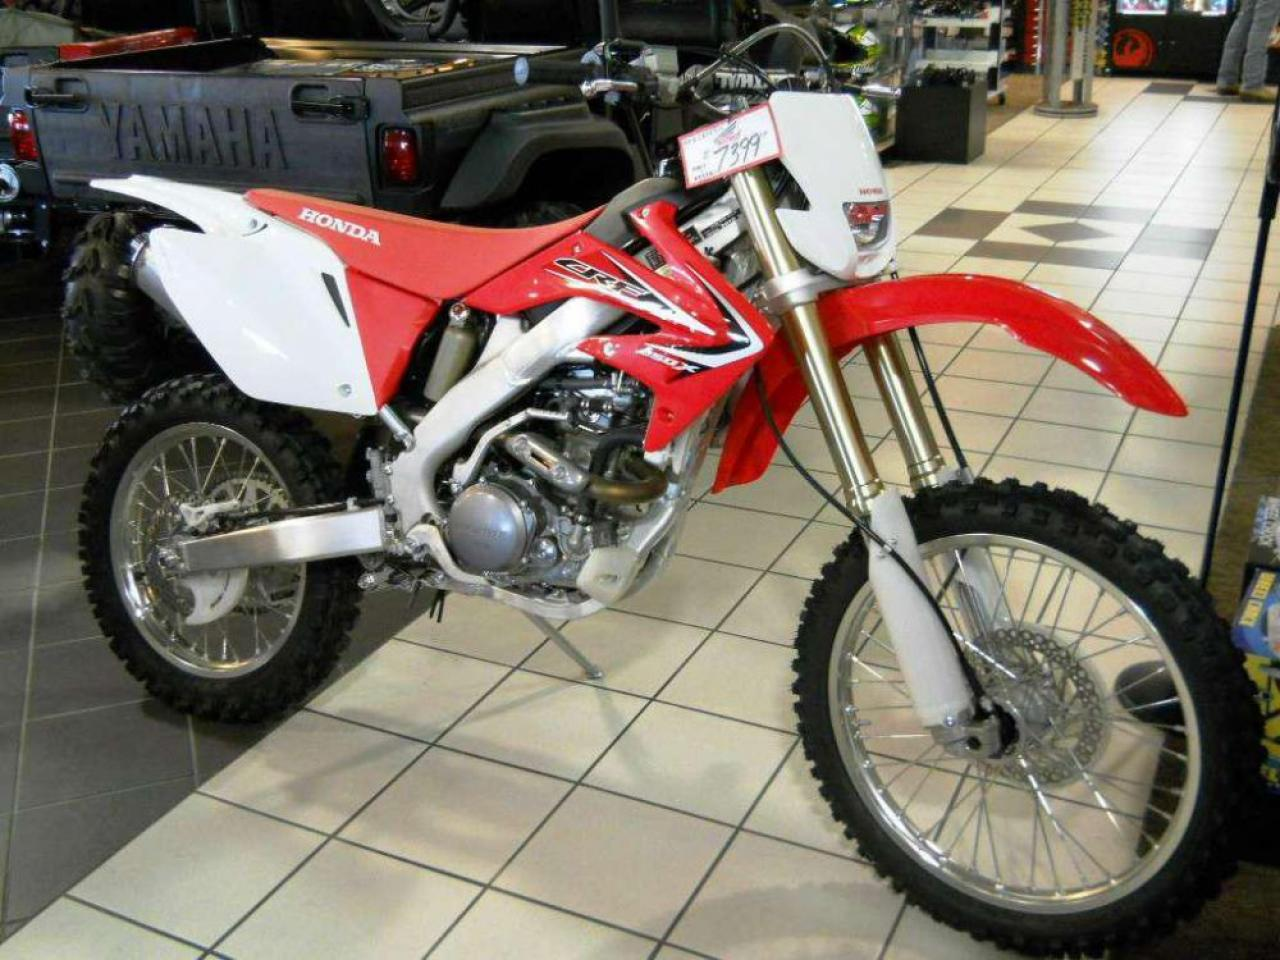 Honda Crf250x Driver Gigabyte 965p Ds3zip 2005 Wiring Diagram Get The Latest Crf 250x Reviews And 2004 Prices Specifications